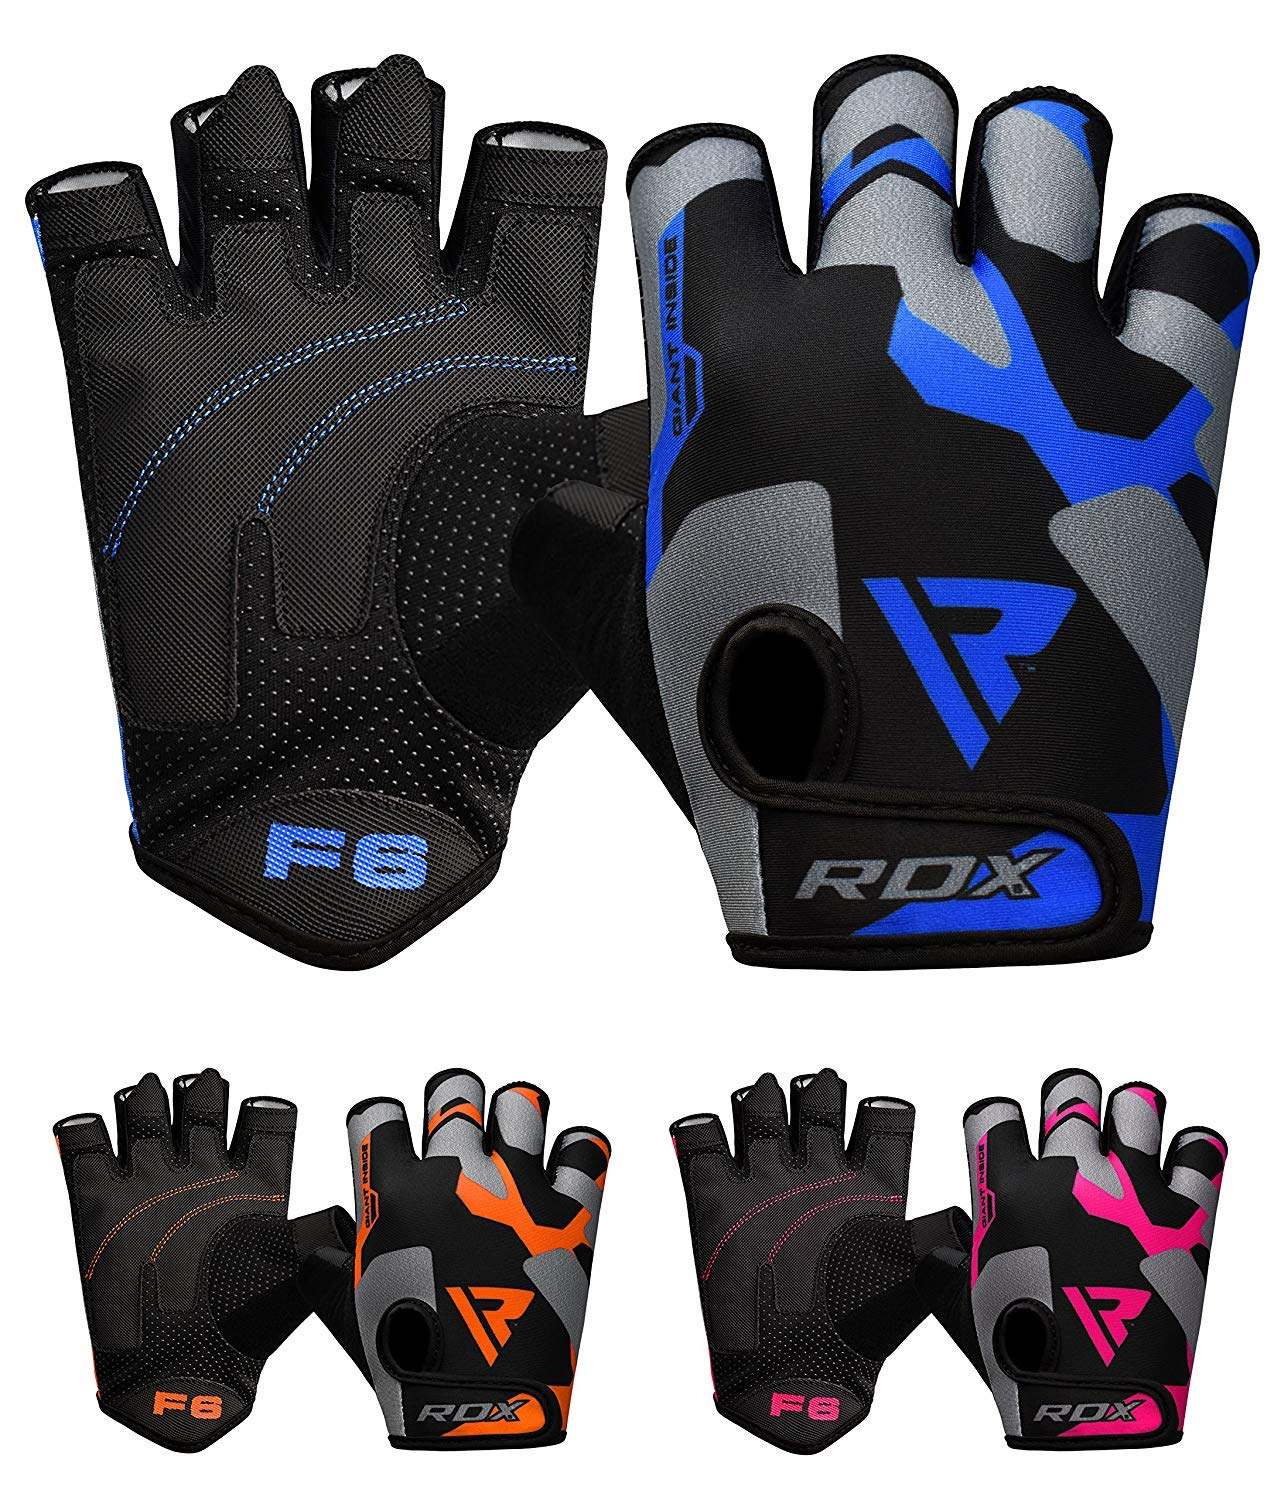 Strength Training Weightlifting /& Exercise Powerlifting Bodybuilding Long Wrist Support Strap with Anti Slip Palm Protection- Great Grip for Fitness RDX Weight Lifting Gloves for Gym Workout